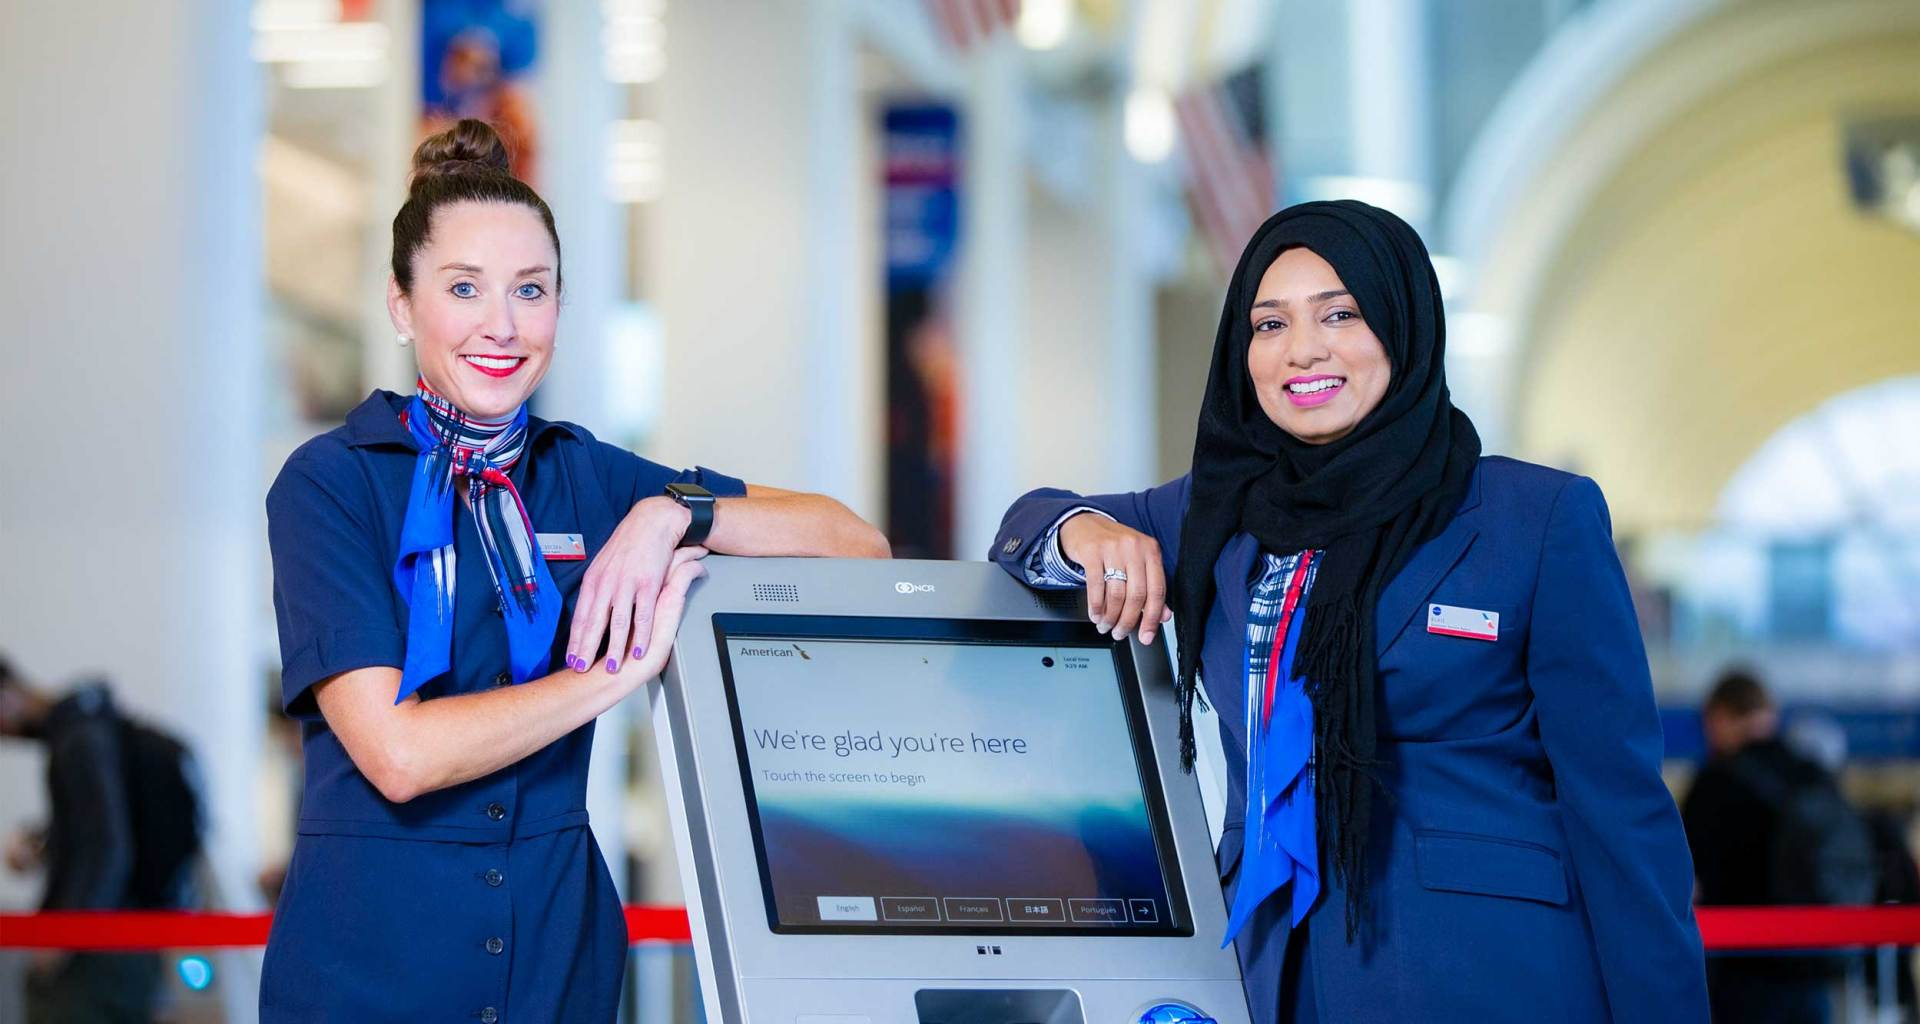 Two American Airlines team members standing at an airport kiosk.